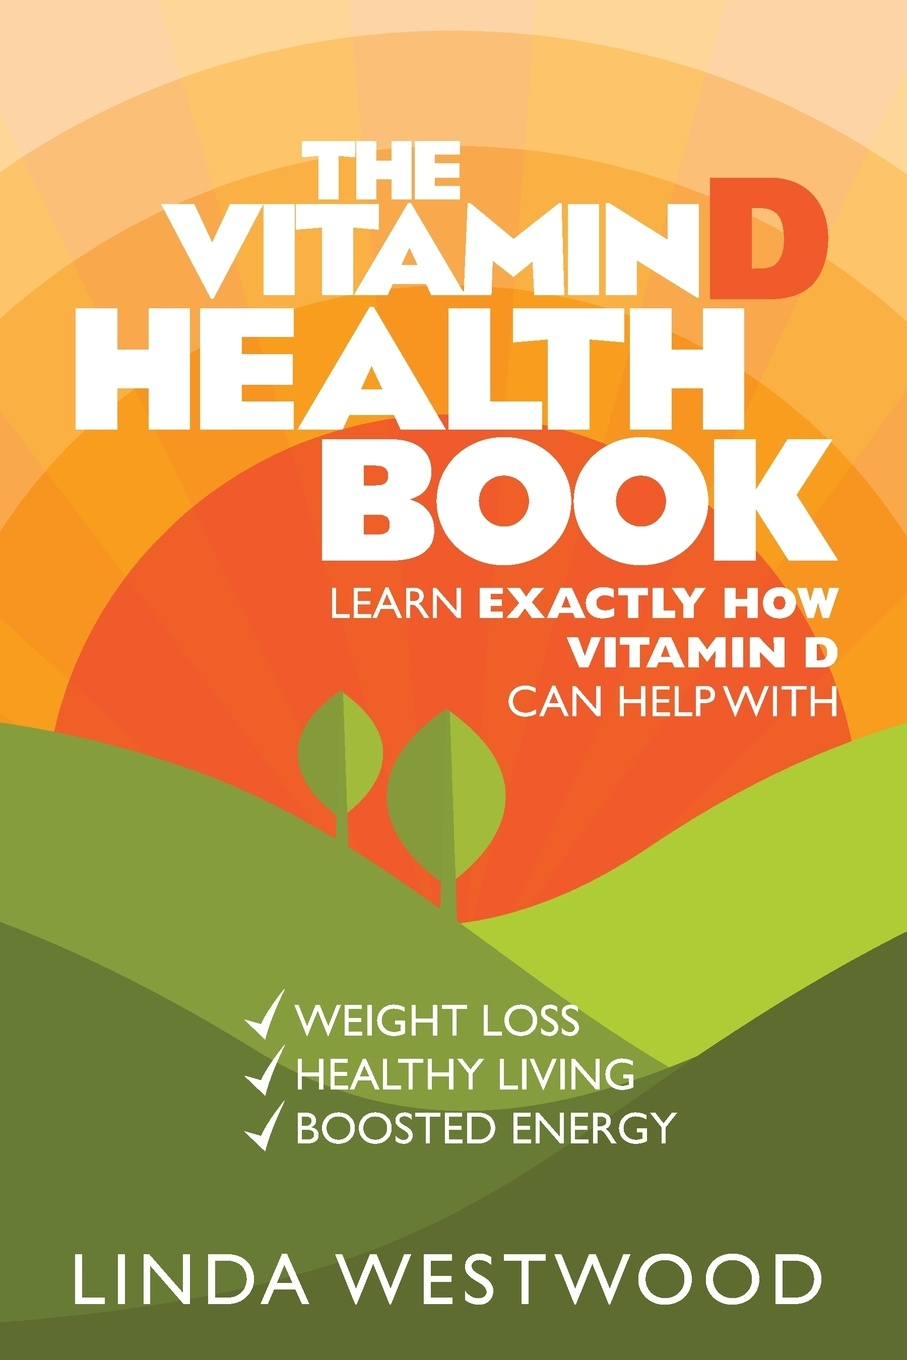 лучшая цена Linda Westwood The Vitamin D Health Book (3rd Edition). Learn Exactly How Vitamin D Can Help With Weight Loss, Healthy Living & Boosted Energy!